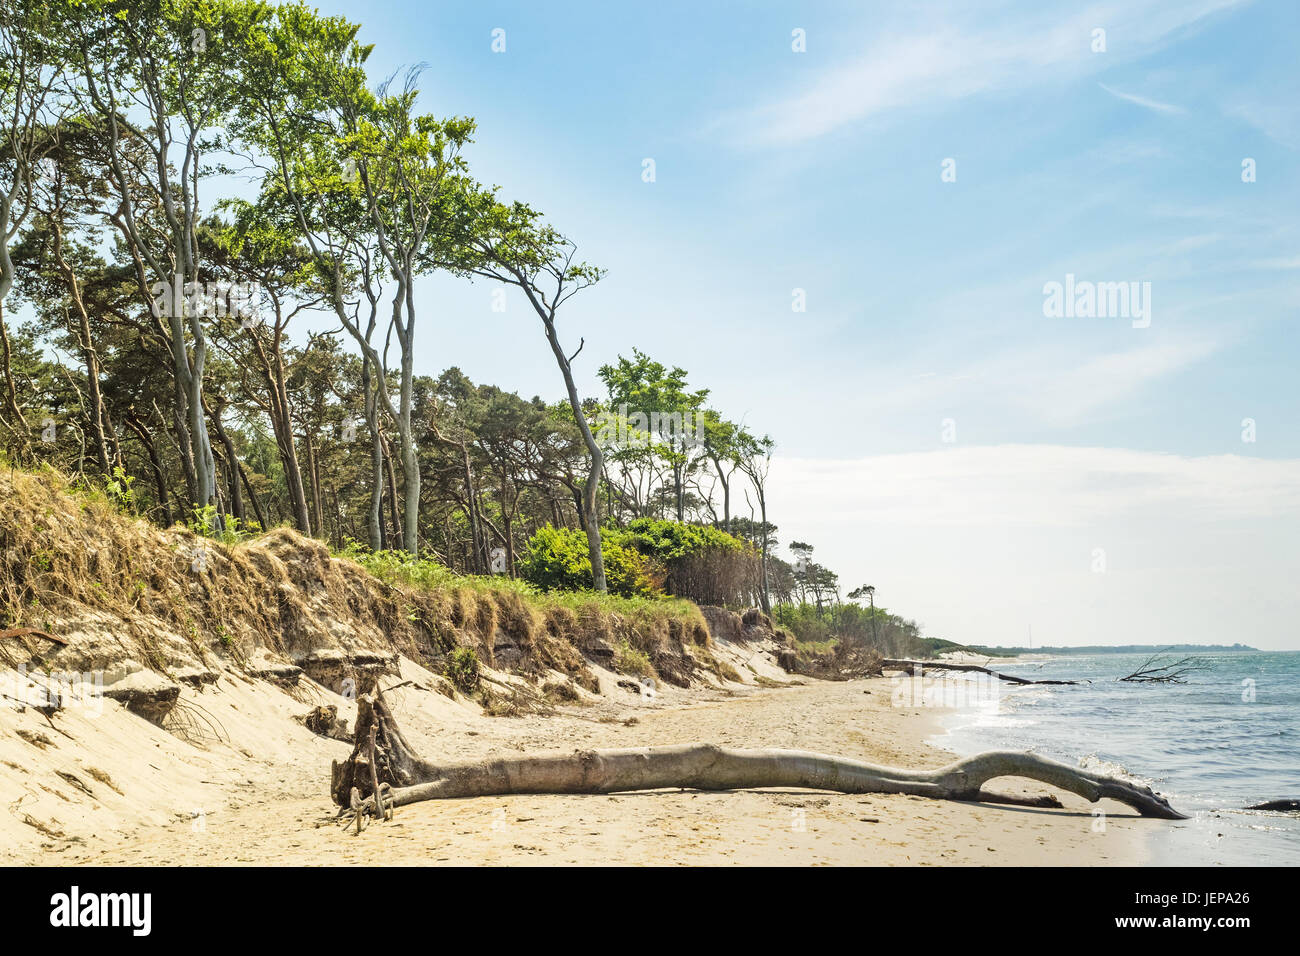 Western beach on the peninsula Darss at Mecklenburg- Western Pomerania, Germany Stock Photo